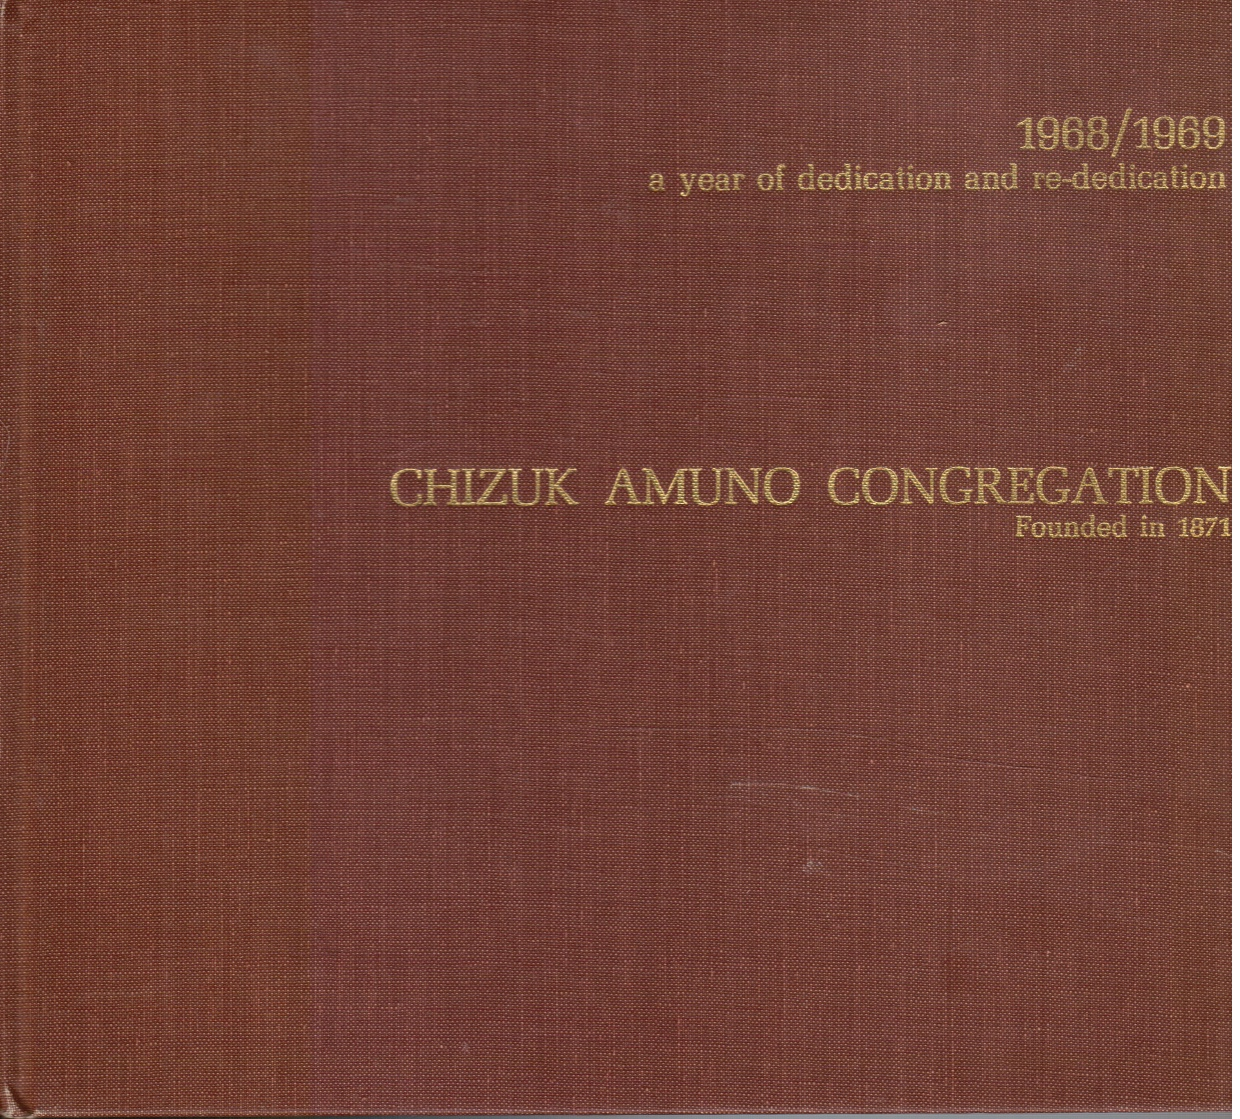 Image for Chizuk Amuno Congregation: 1968/1969 a year of dedication and re-dedication